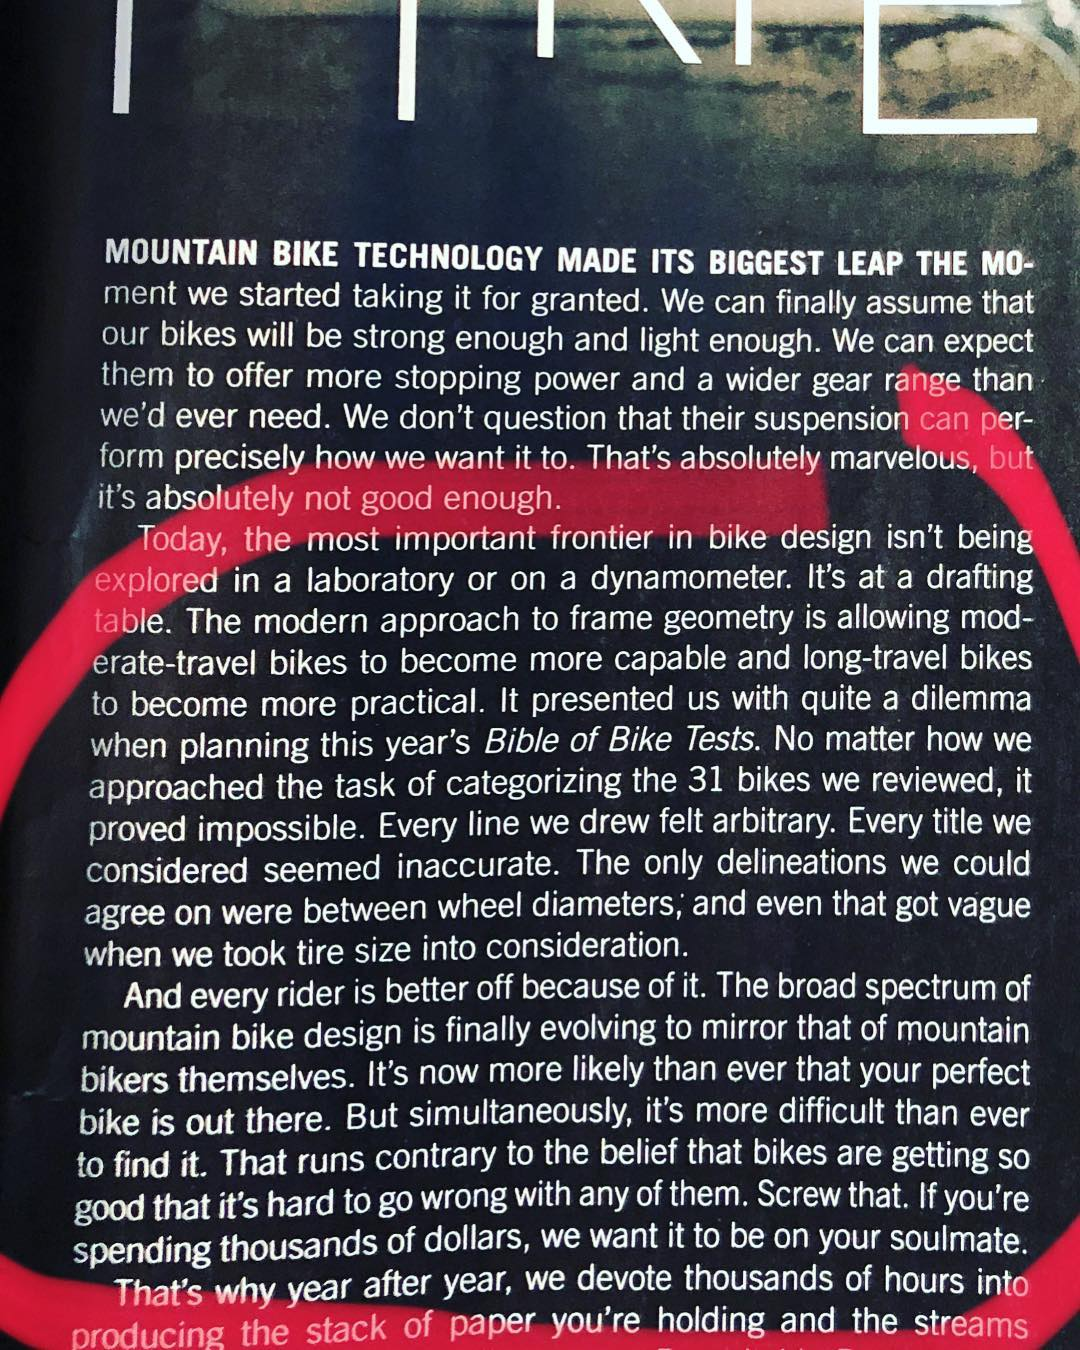 Wise words from the intro of the @bikemag 2017 bible of bikes test. The majority of top bikes are now so good and so capable of being used on such a wide range of terrain that it is simply impossible to categorise them in the same way as the past. eBikes blur many of these lines even further. #bikes #design